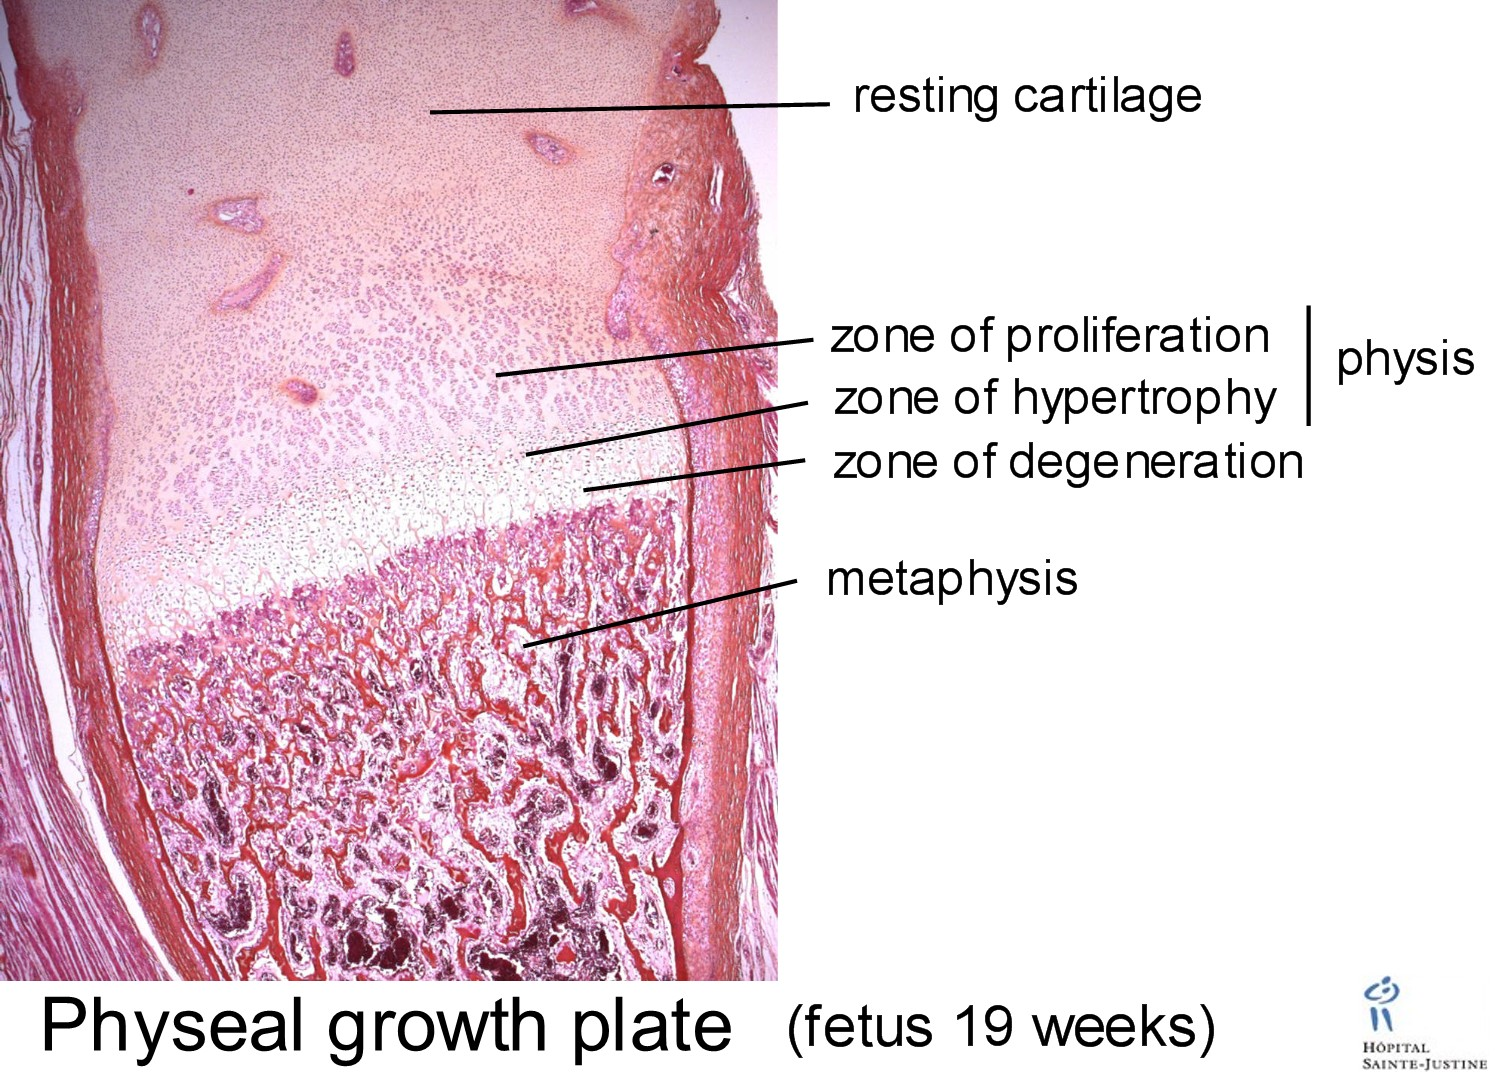 Growth Plate Zones of Cartilage